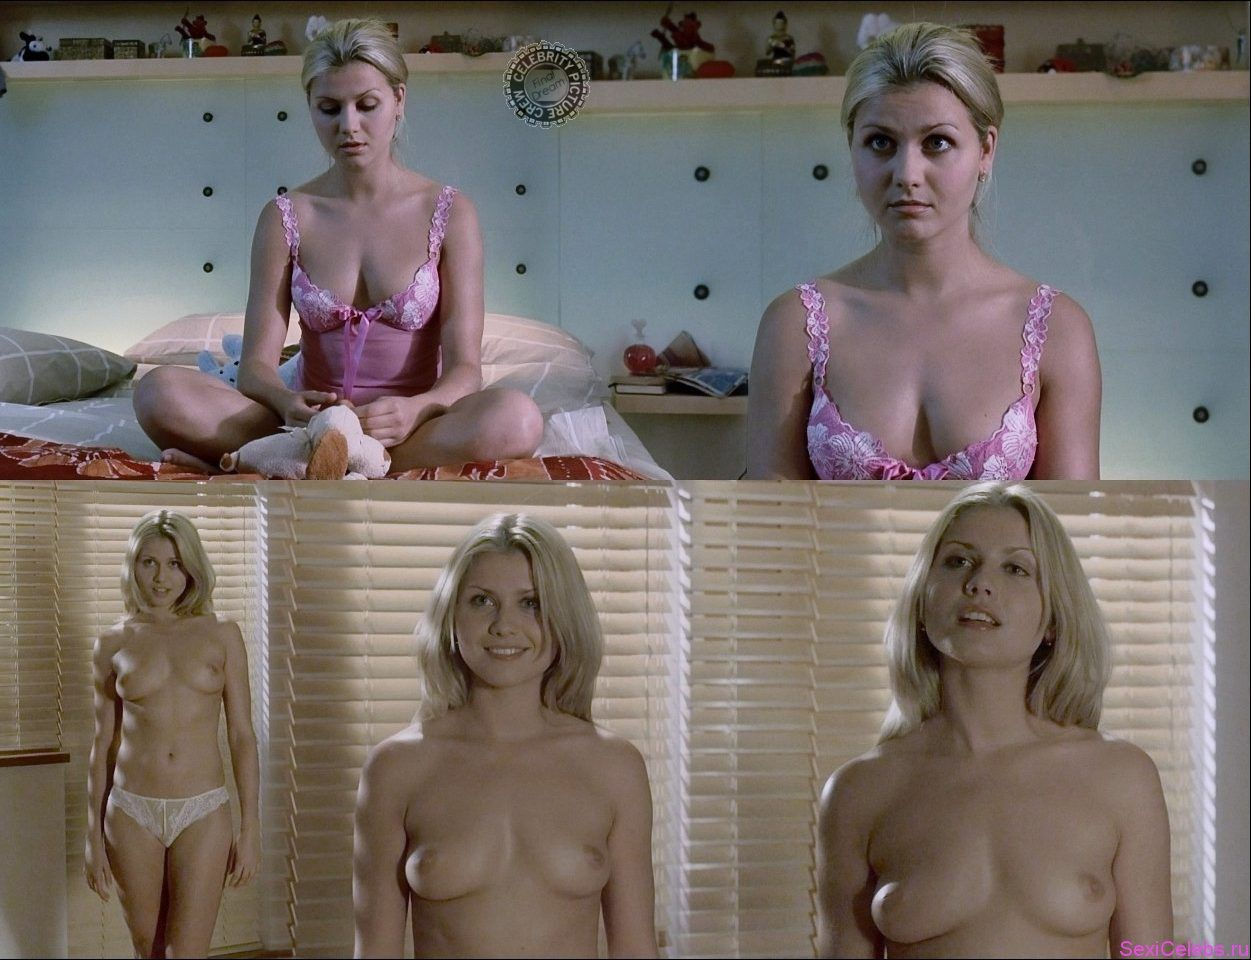 Jessica boehrs full frontal nude in eurotrip